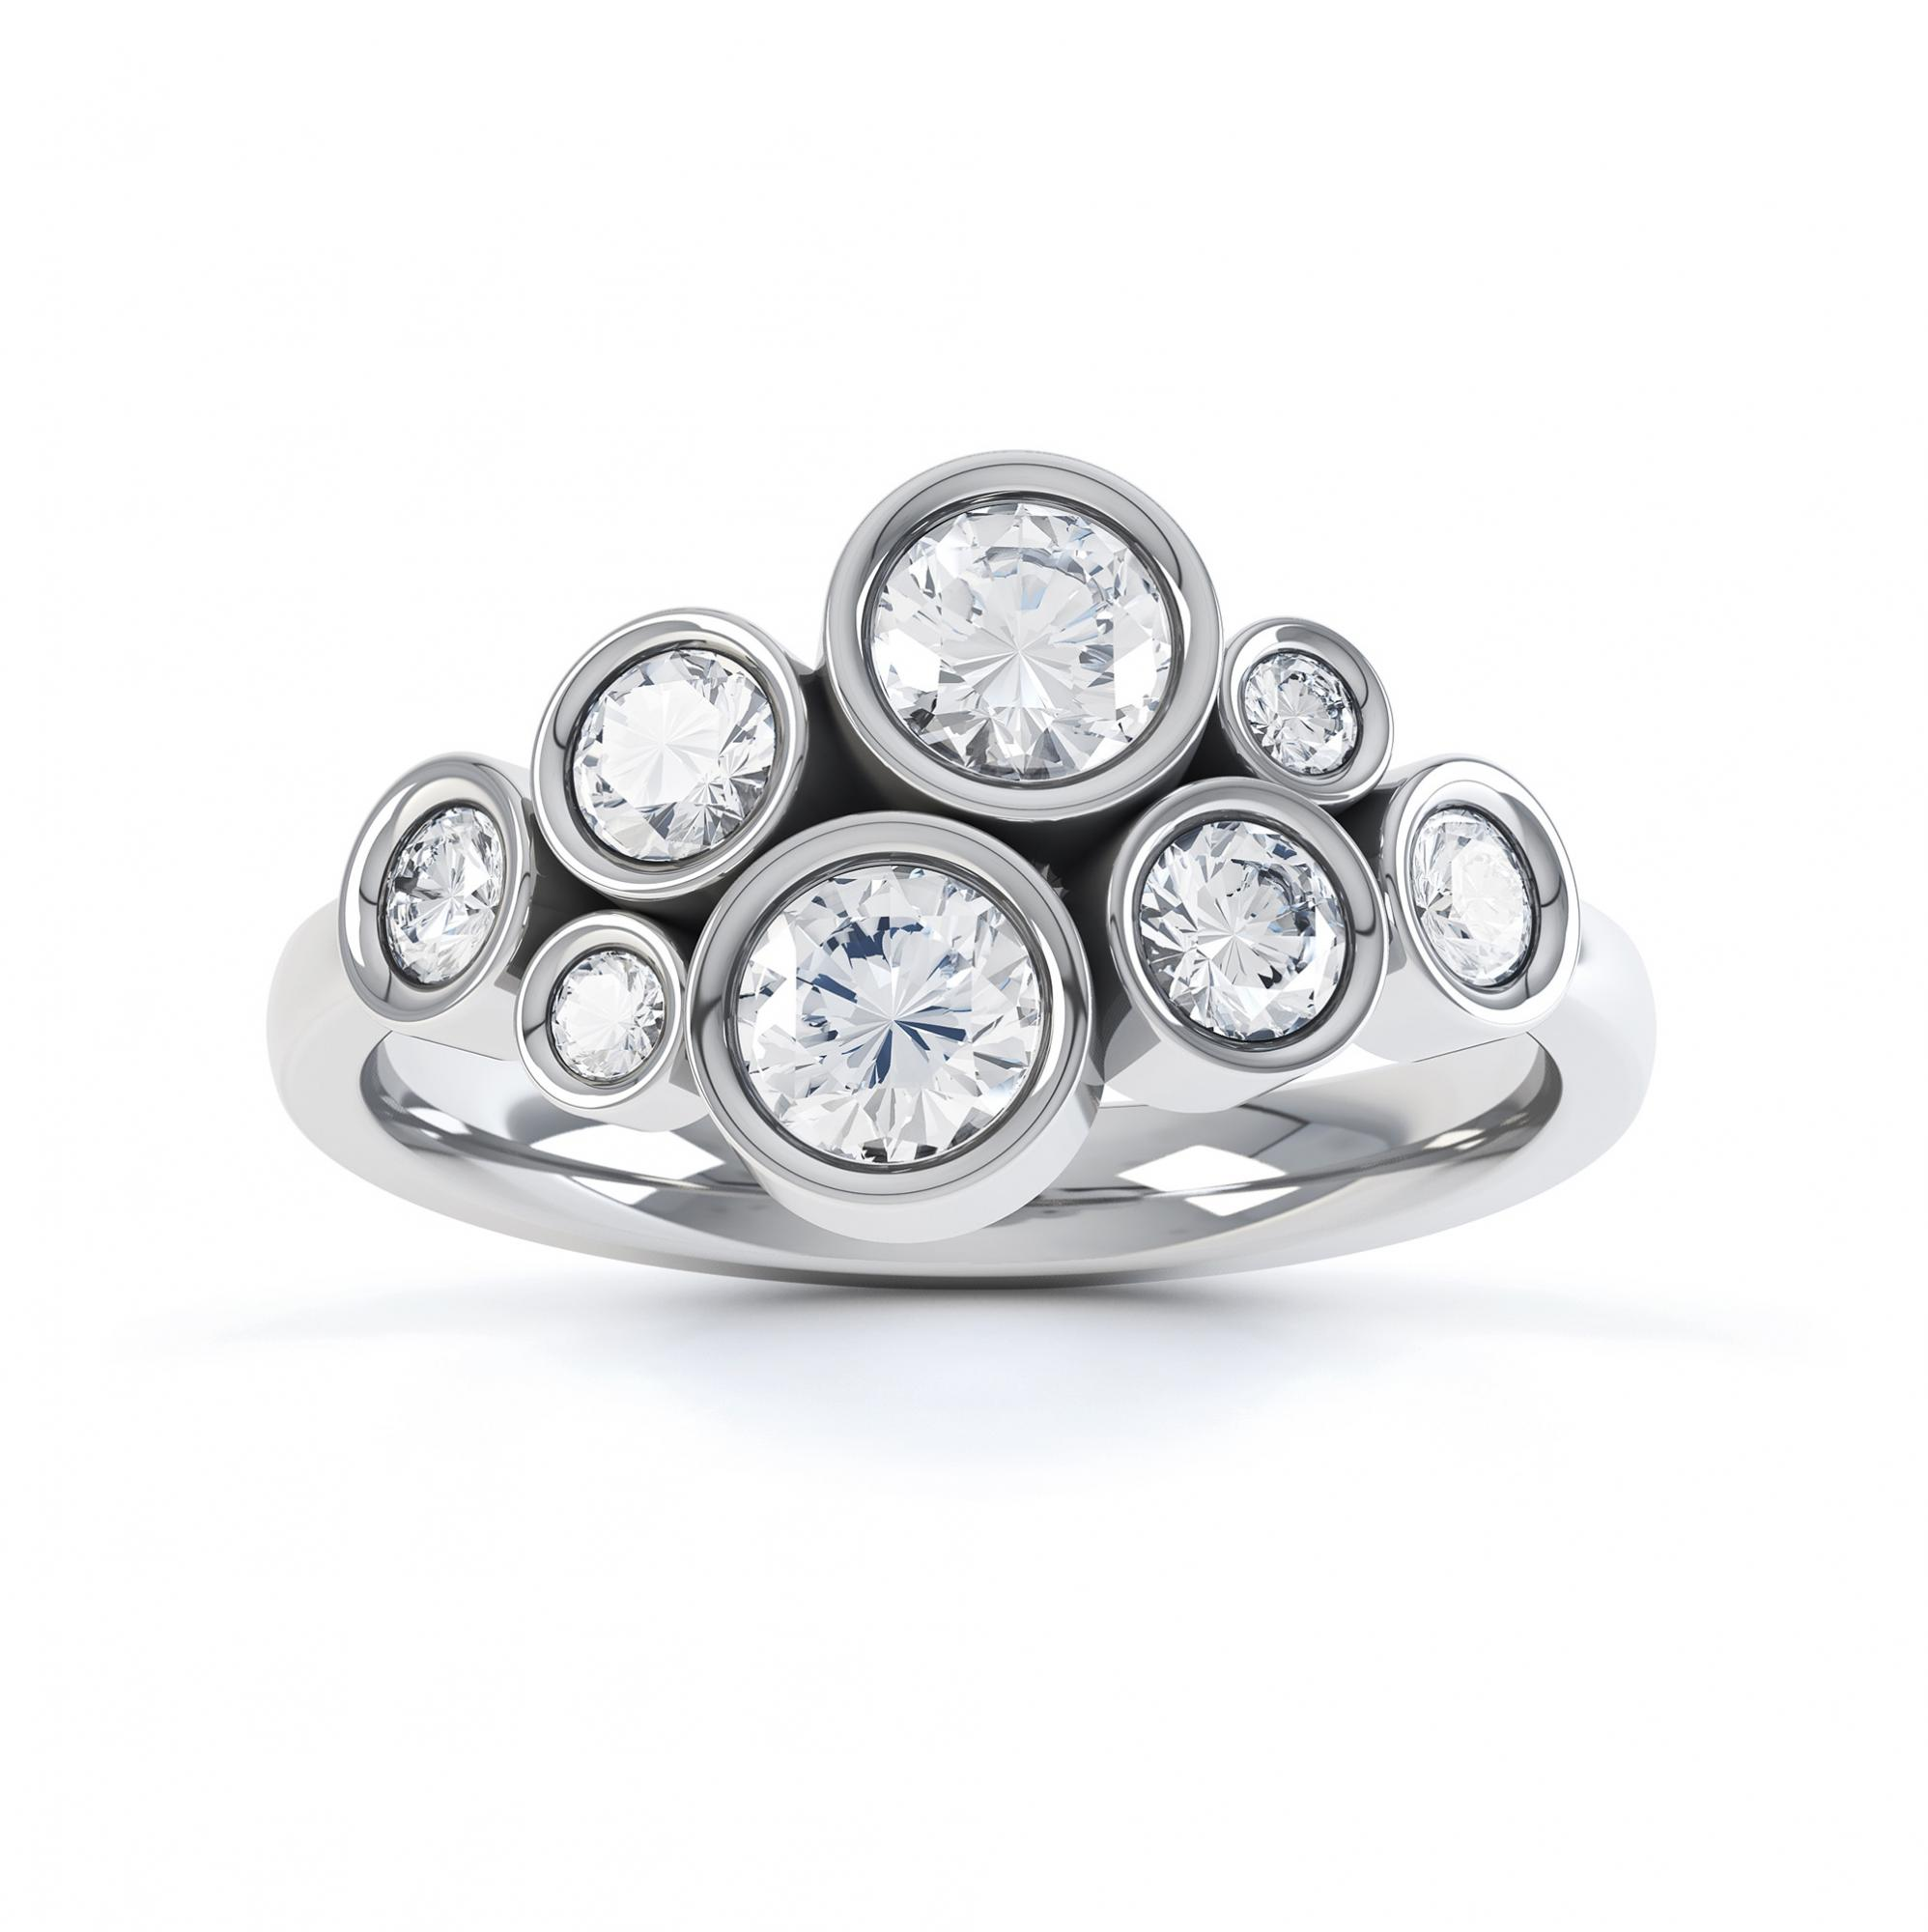 Diamond bubble ring top view platinum